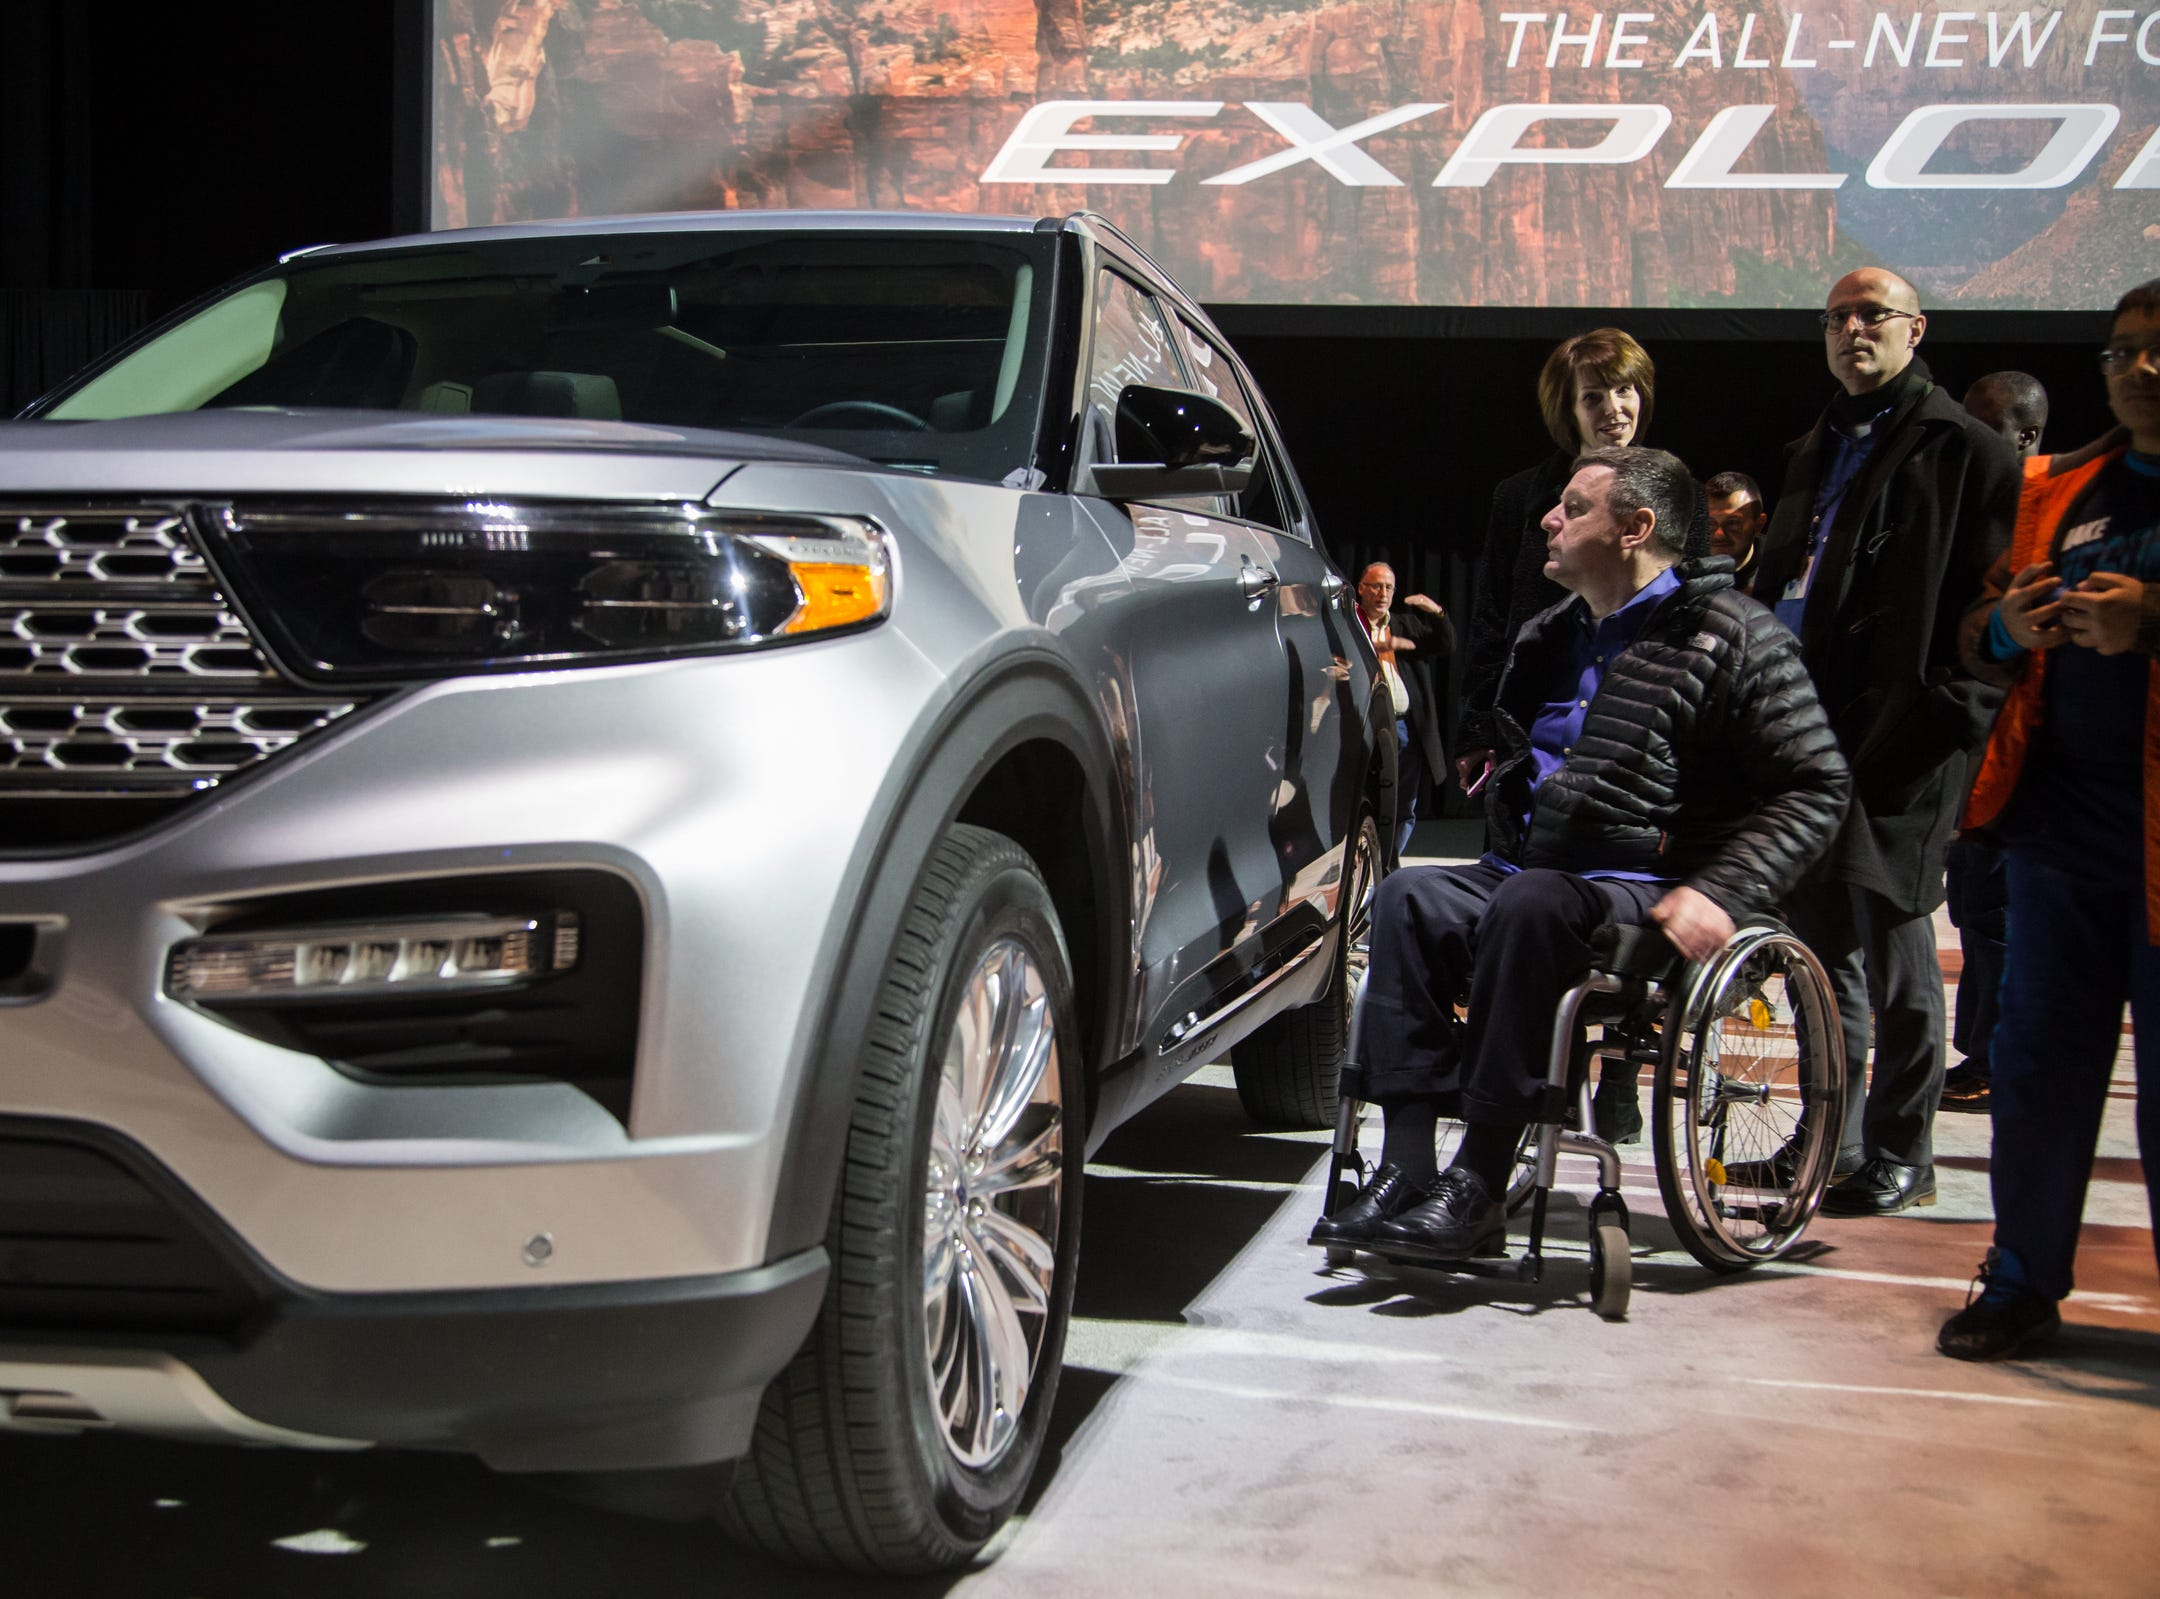 Stefan Sonnenschein Royal Oak looks over an all new 2020 Ford Explorer during a Ford event at Ford Field in Detroit on Wednesday, January 9, 2019.